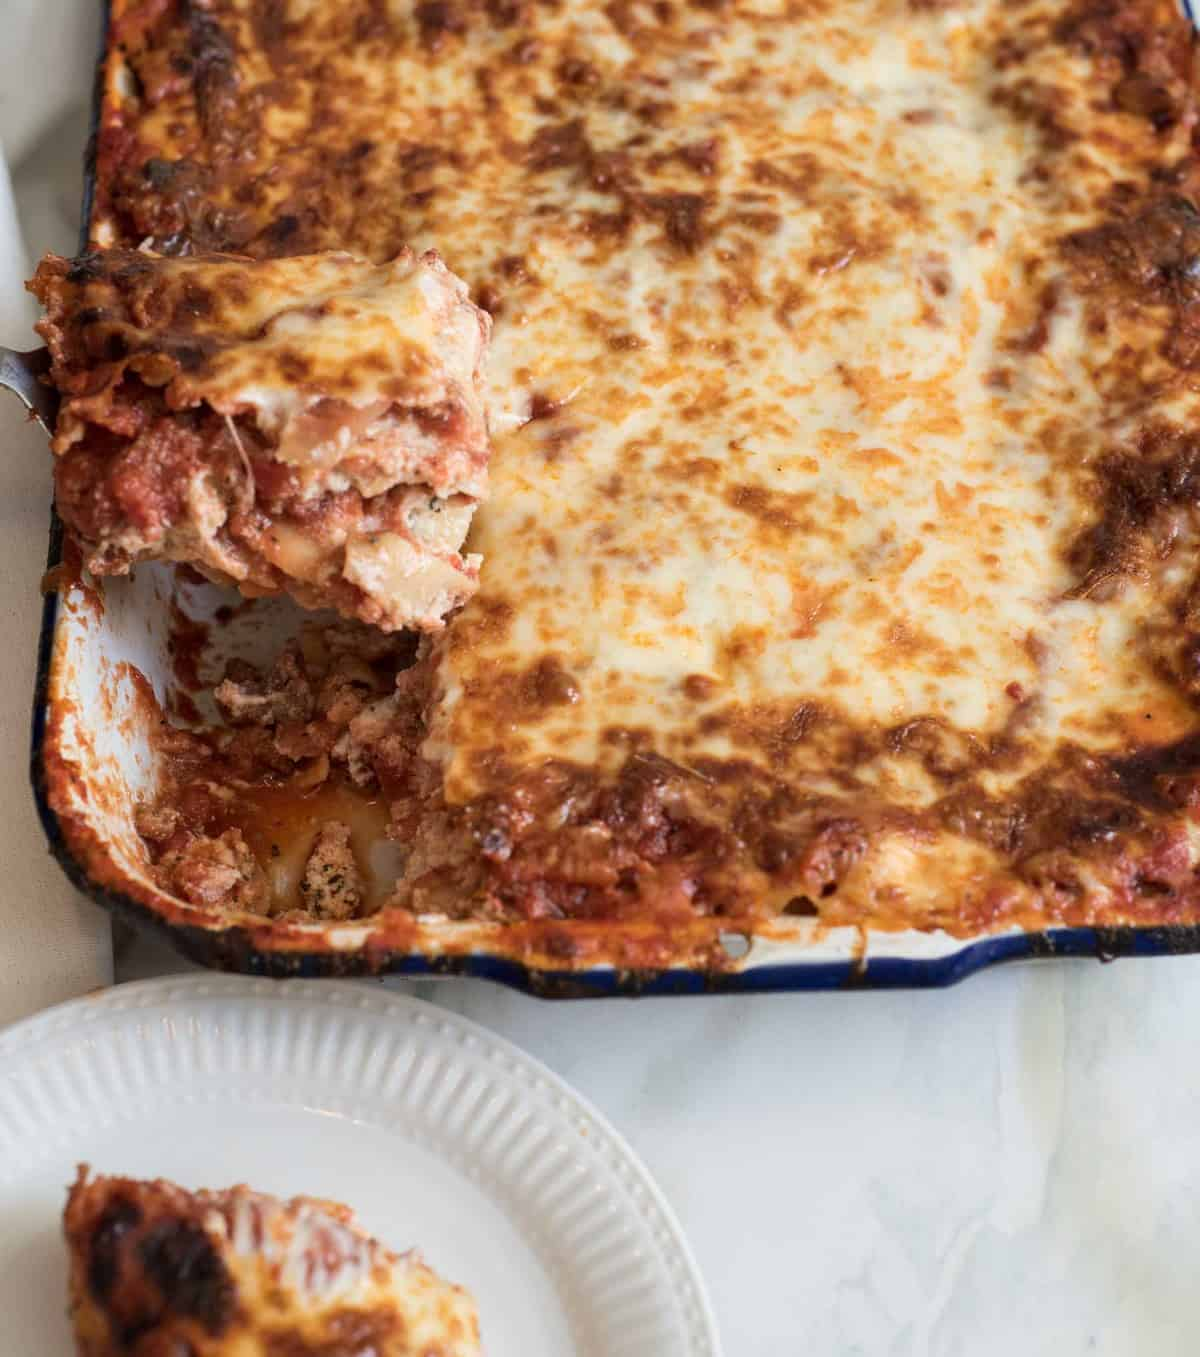 The Best Make-Ahead Lasagna recipe that is also freezer friendly is made with a rich sausage sauce and loads of cheese. This will be your go-to lasagna recipe guaranteed!